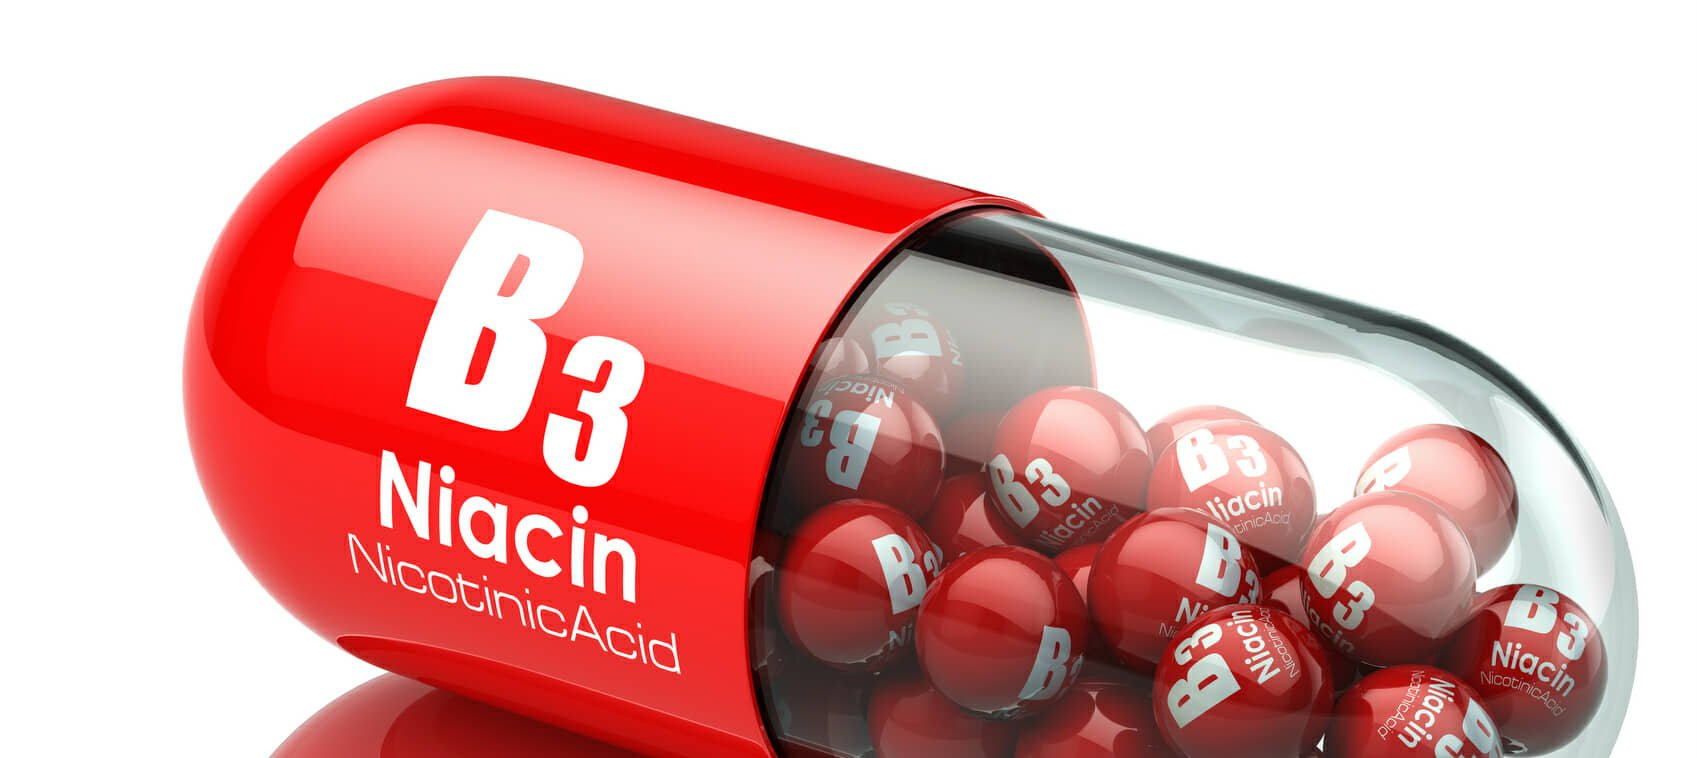 sin-take-niacin-for-cholesterol-troubles-cover